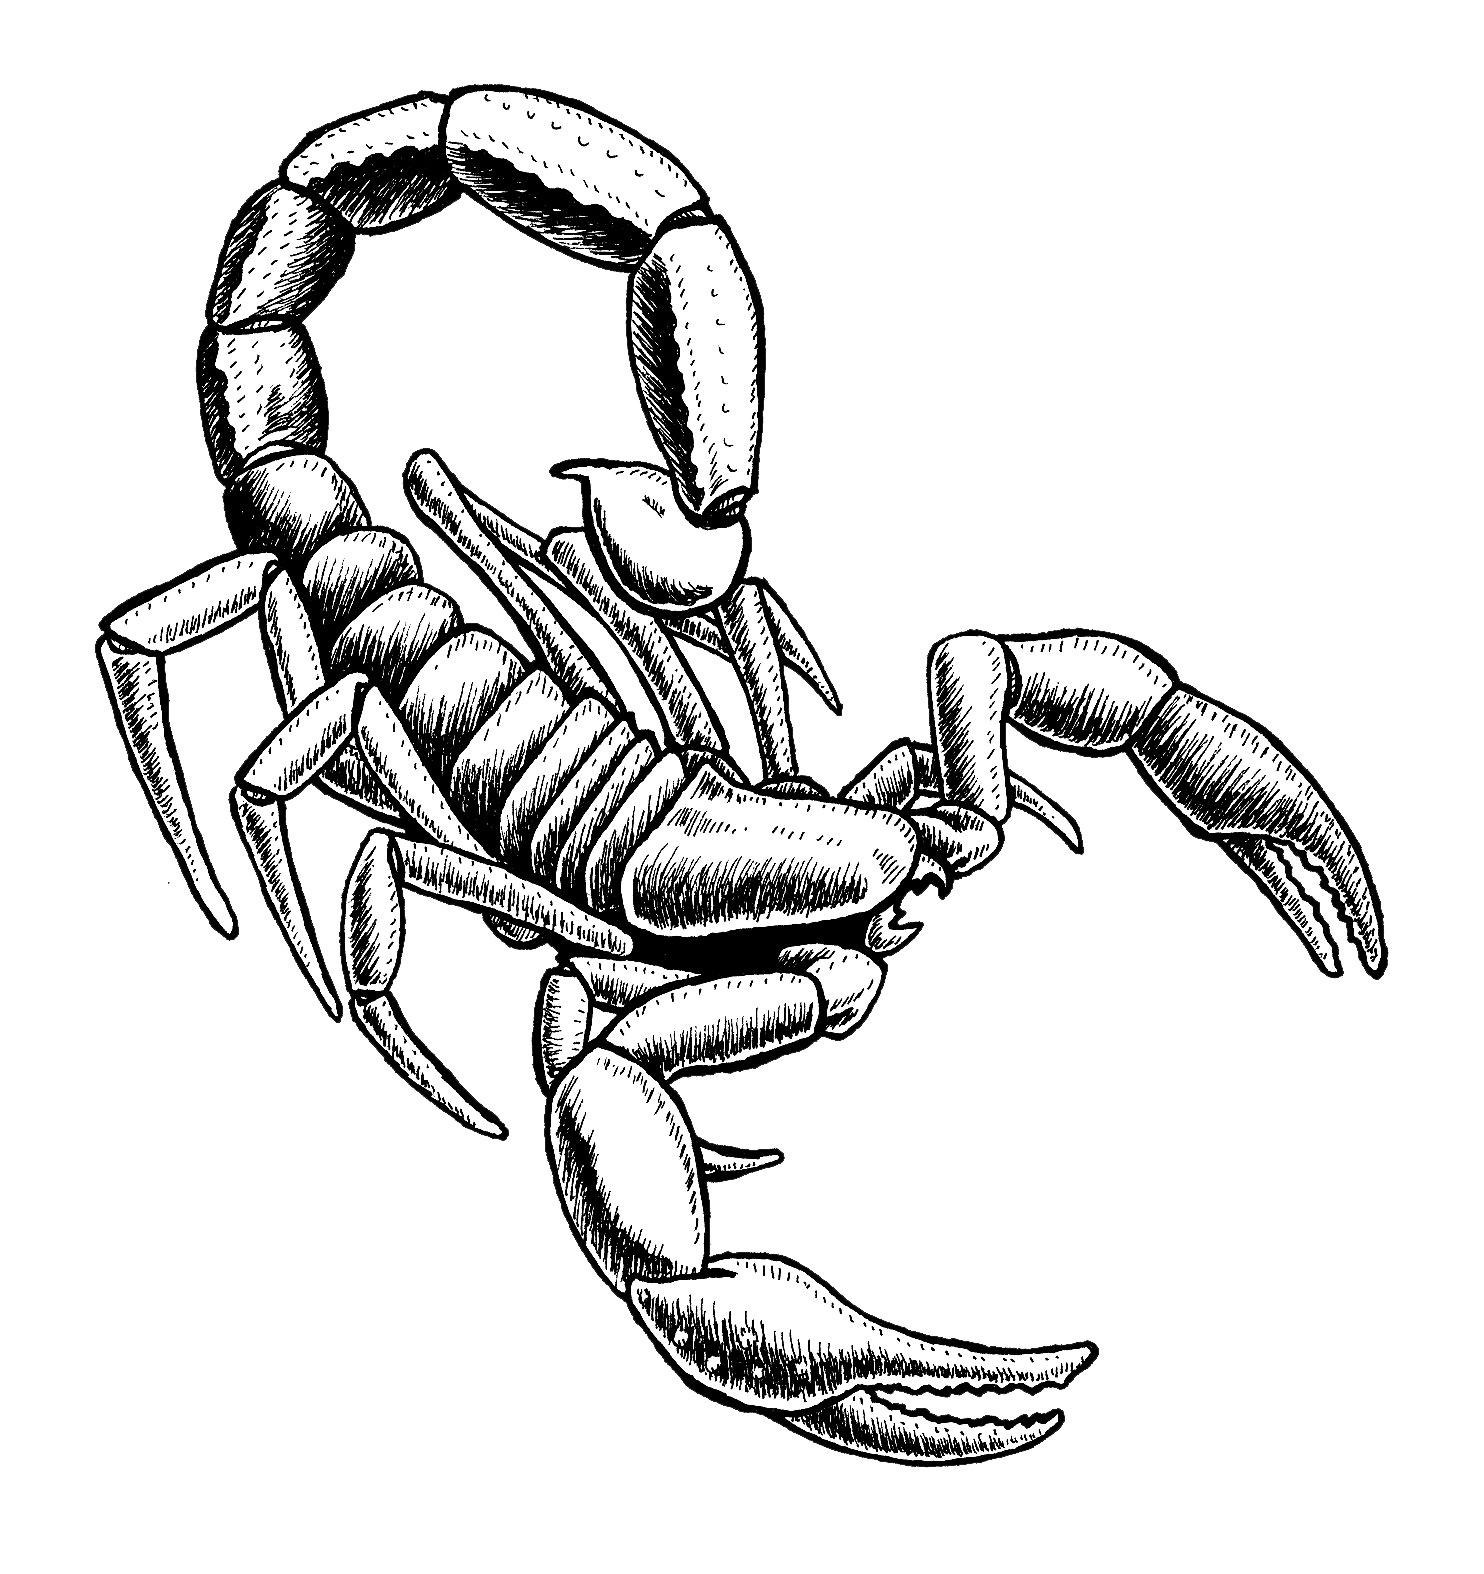 scorpion coloring scorpion 9 coloring page free printable coloring pages coloring scorpion